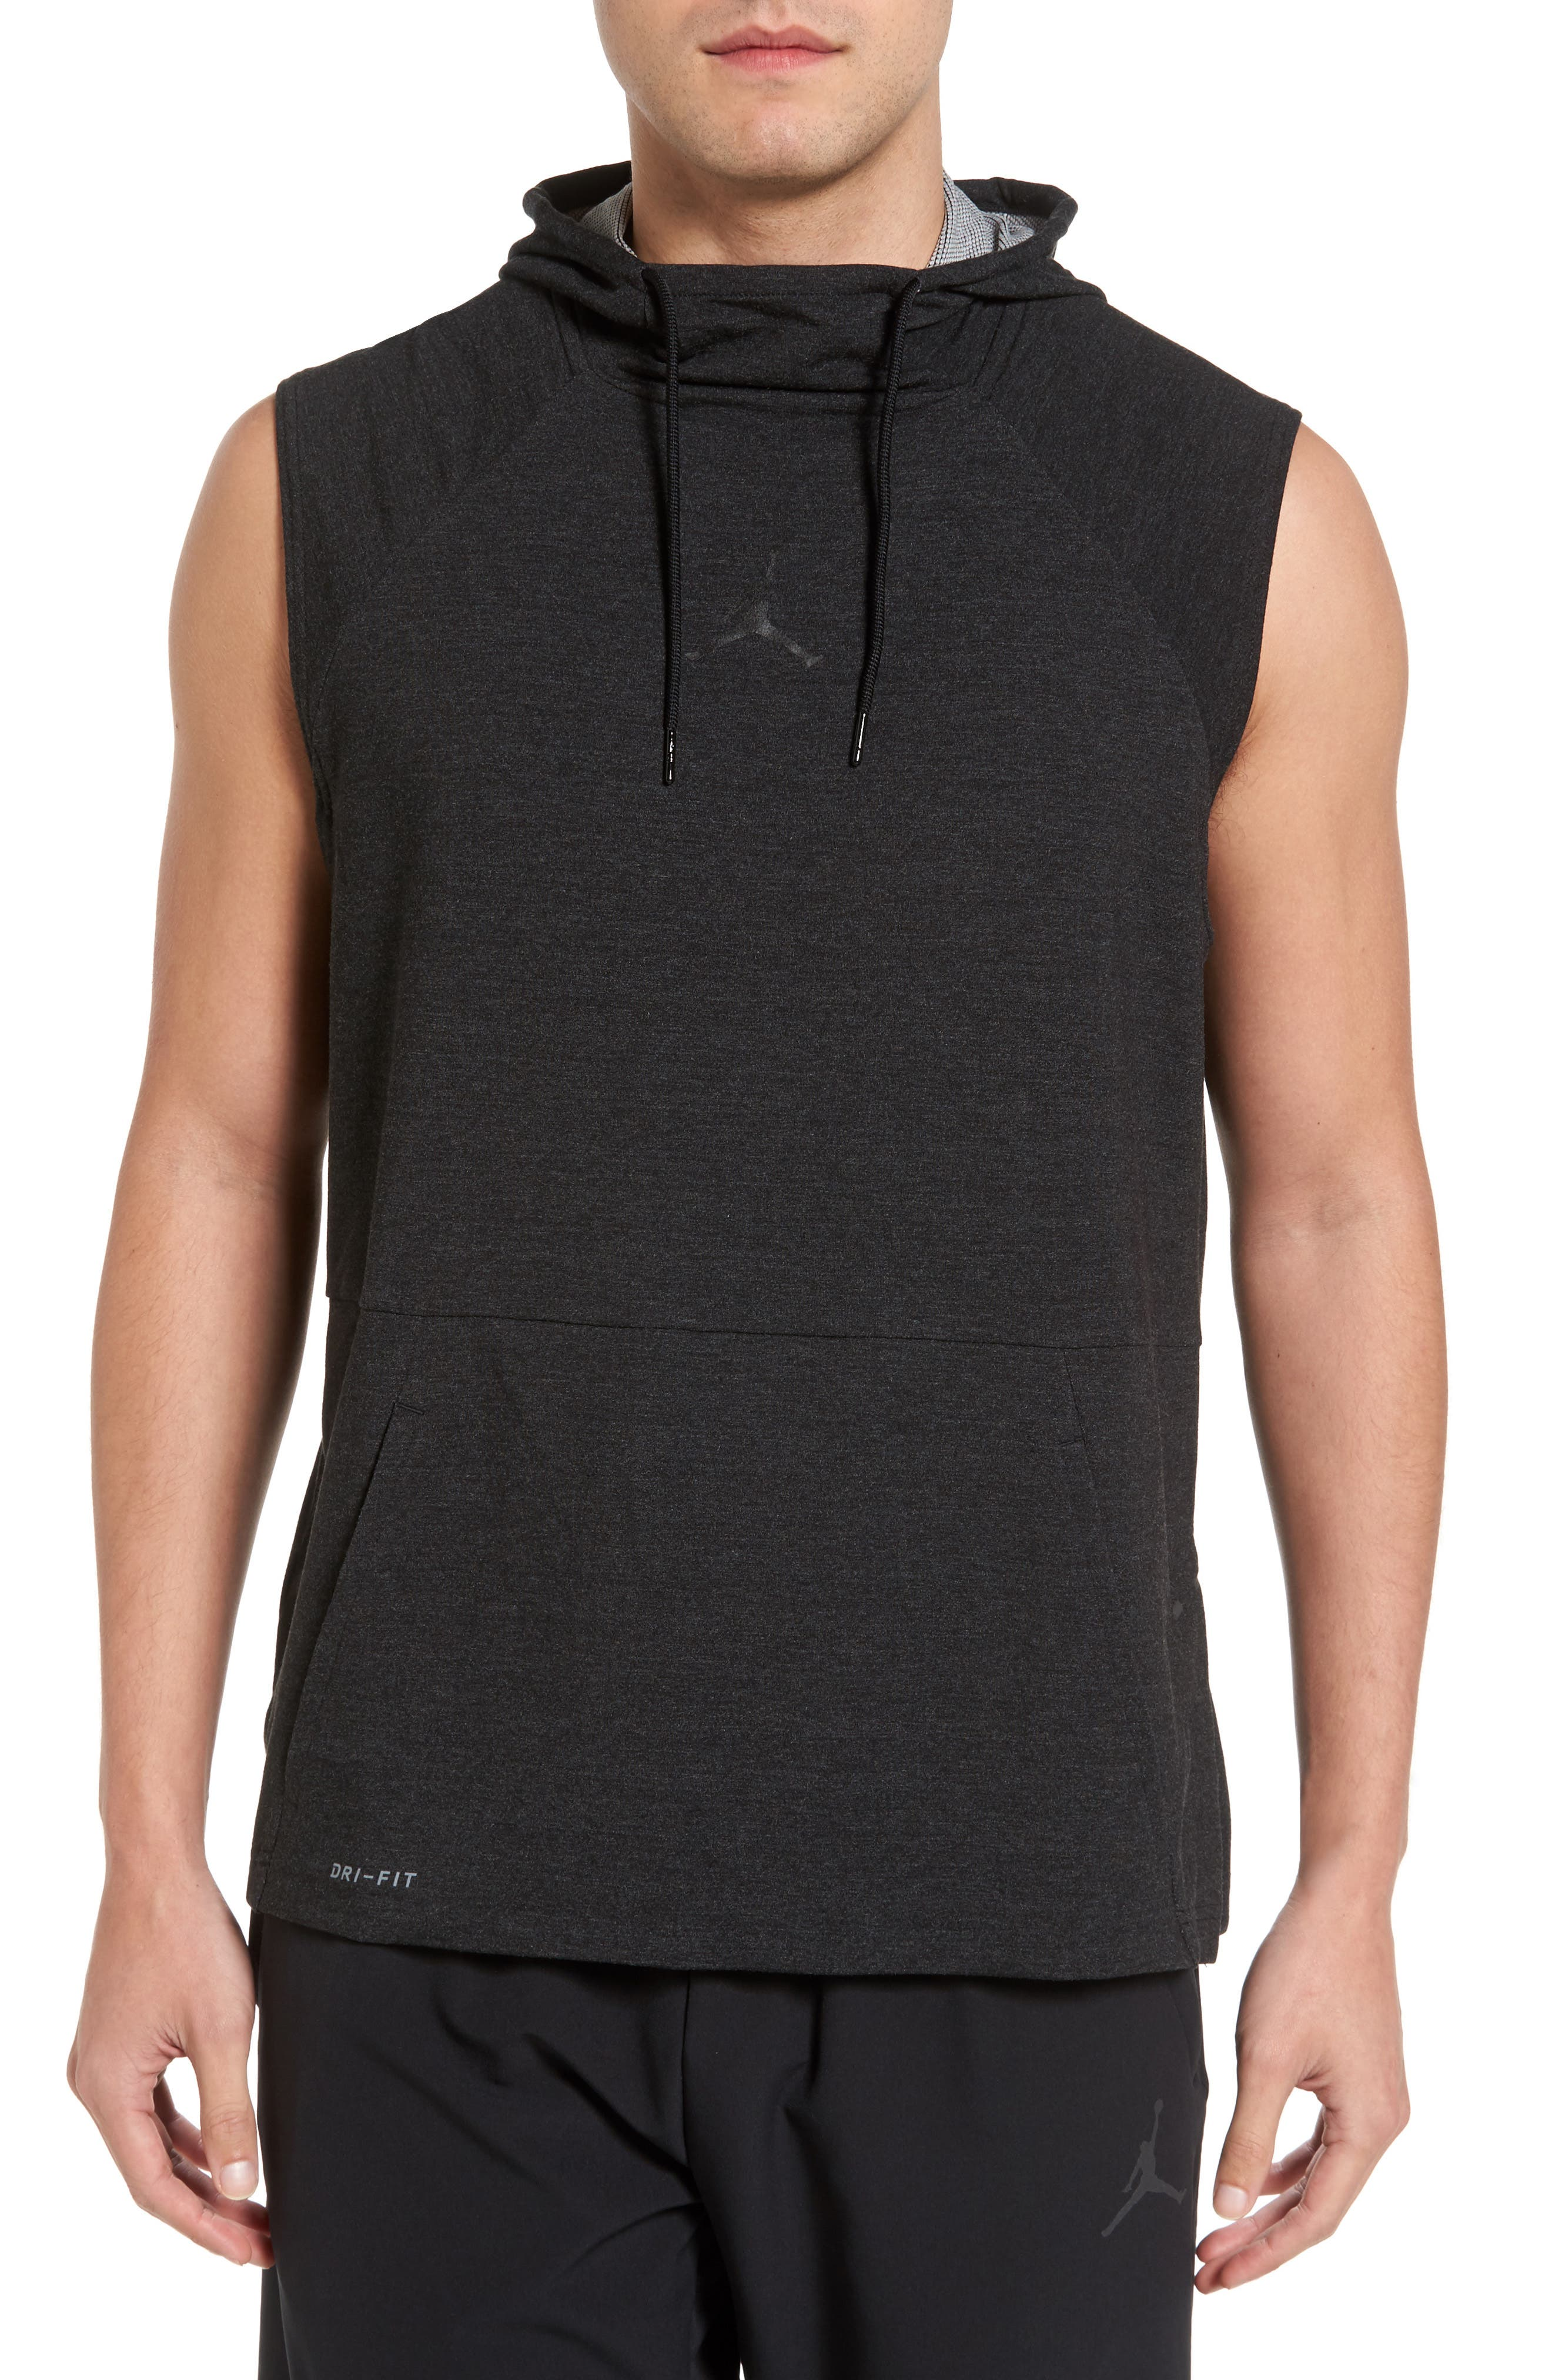 23 Tech Sphere Sleeveless Training Hoodie,                             Main thumbnail 1, color,                             010